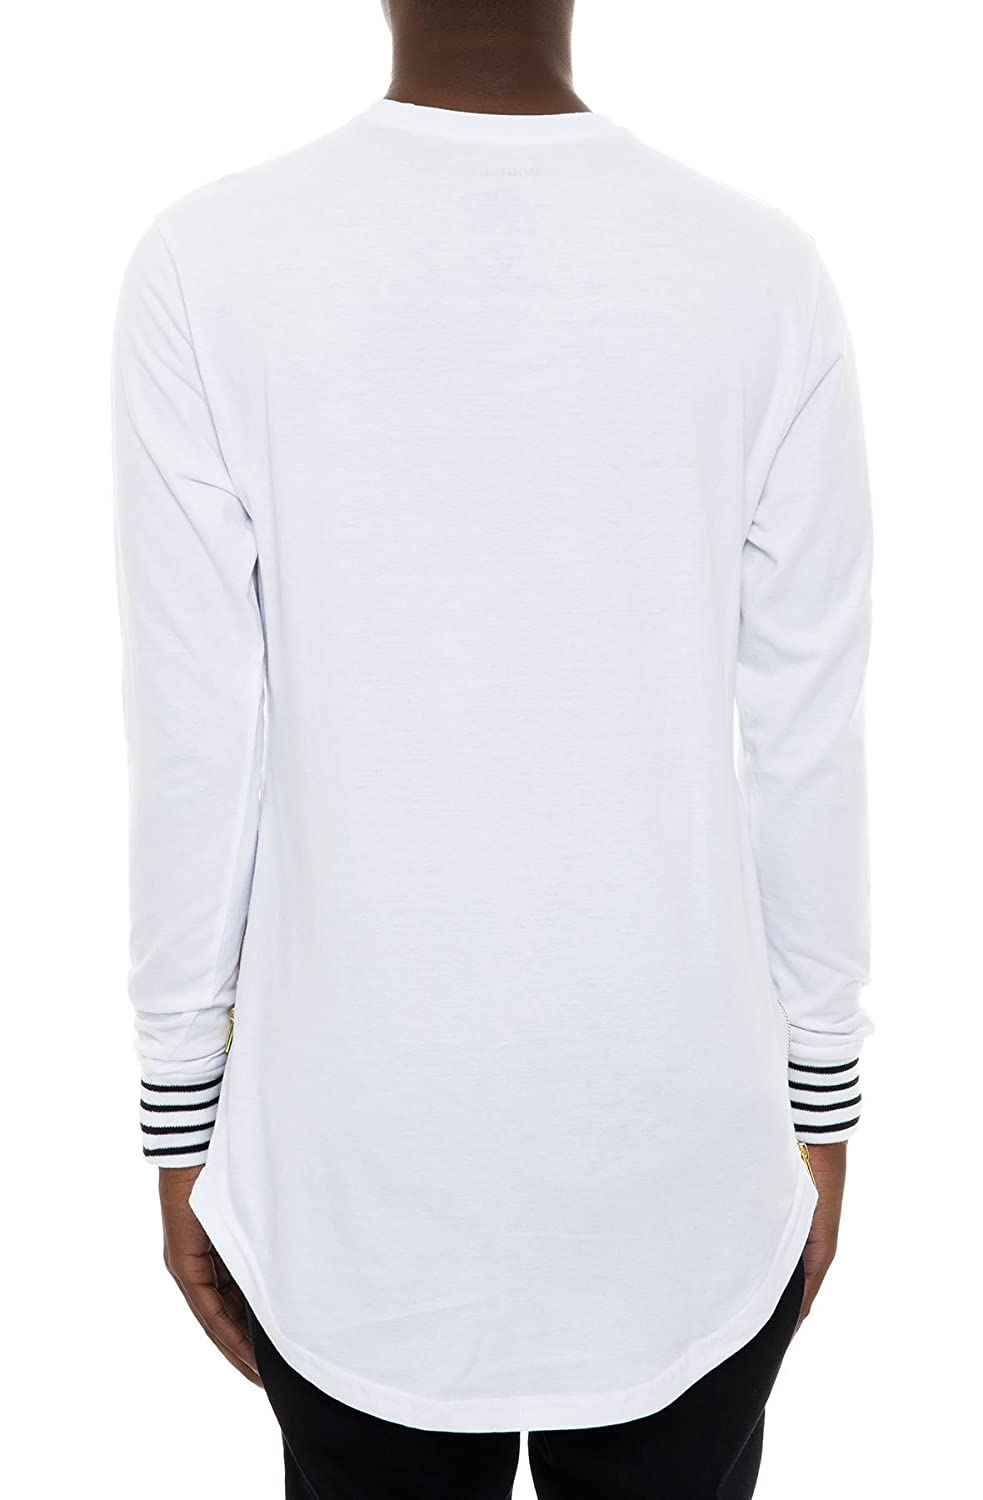 0e2046027 Smoke Rise Men's Scalloped Longline Side Zippers Long Sleeve T Shirt